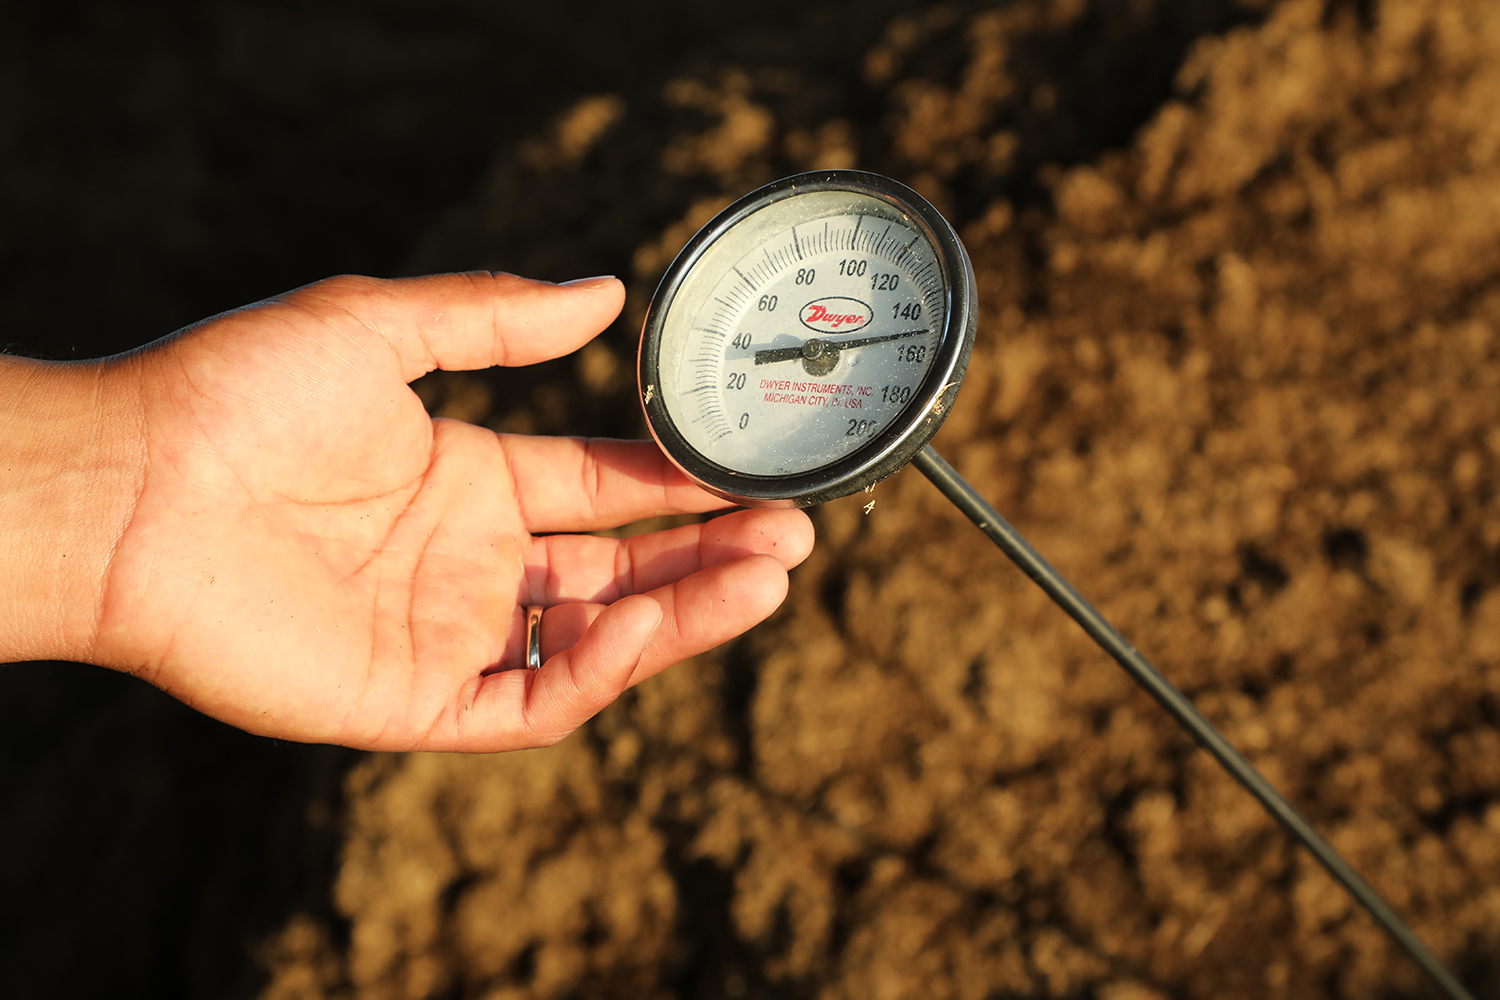 Measuring the temperature of a pile of cow manure being converted into compost